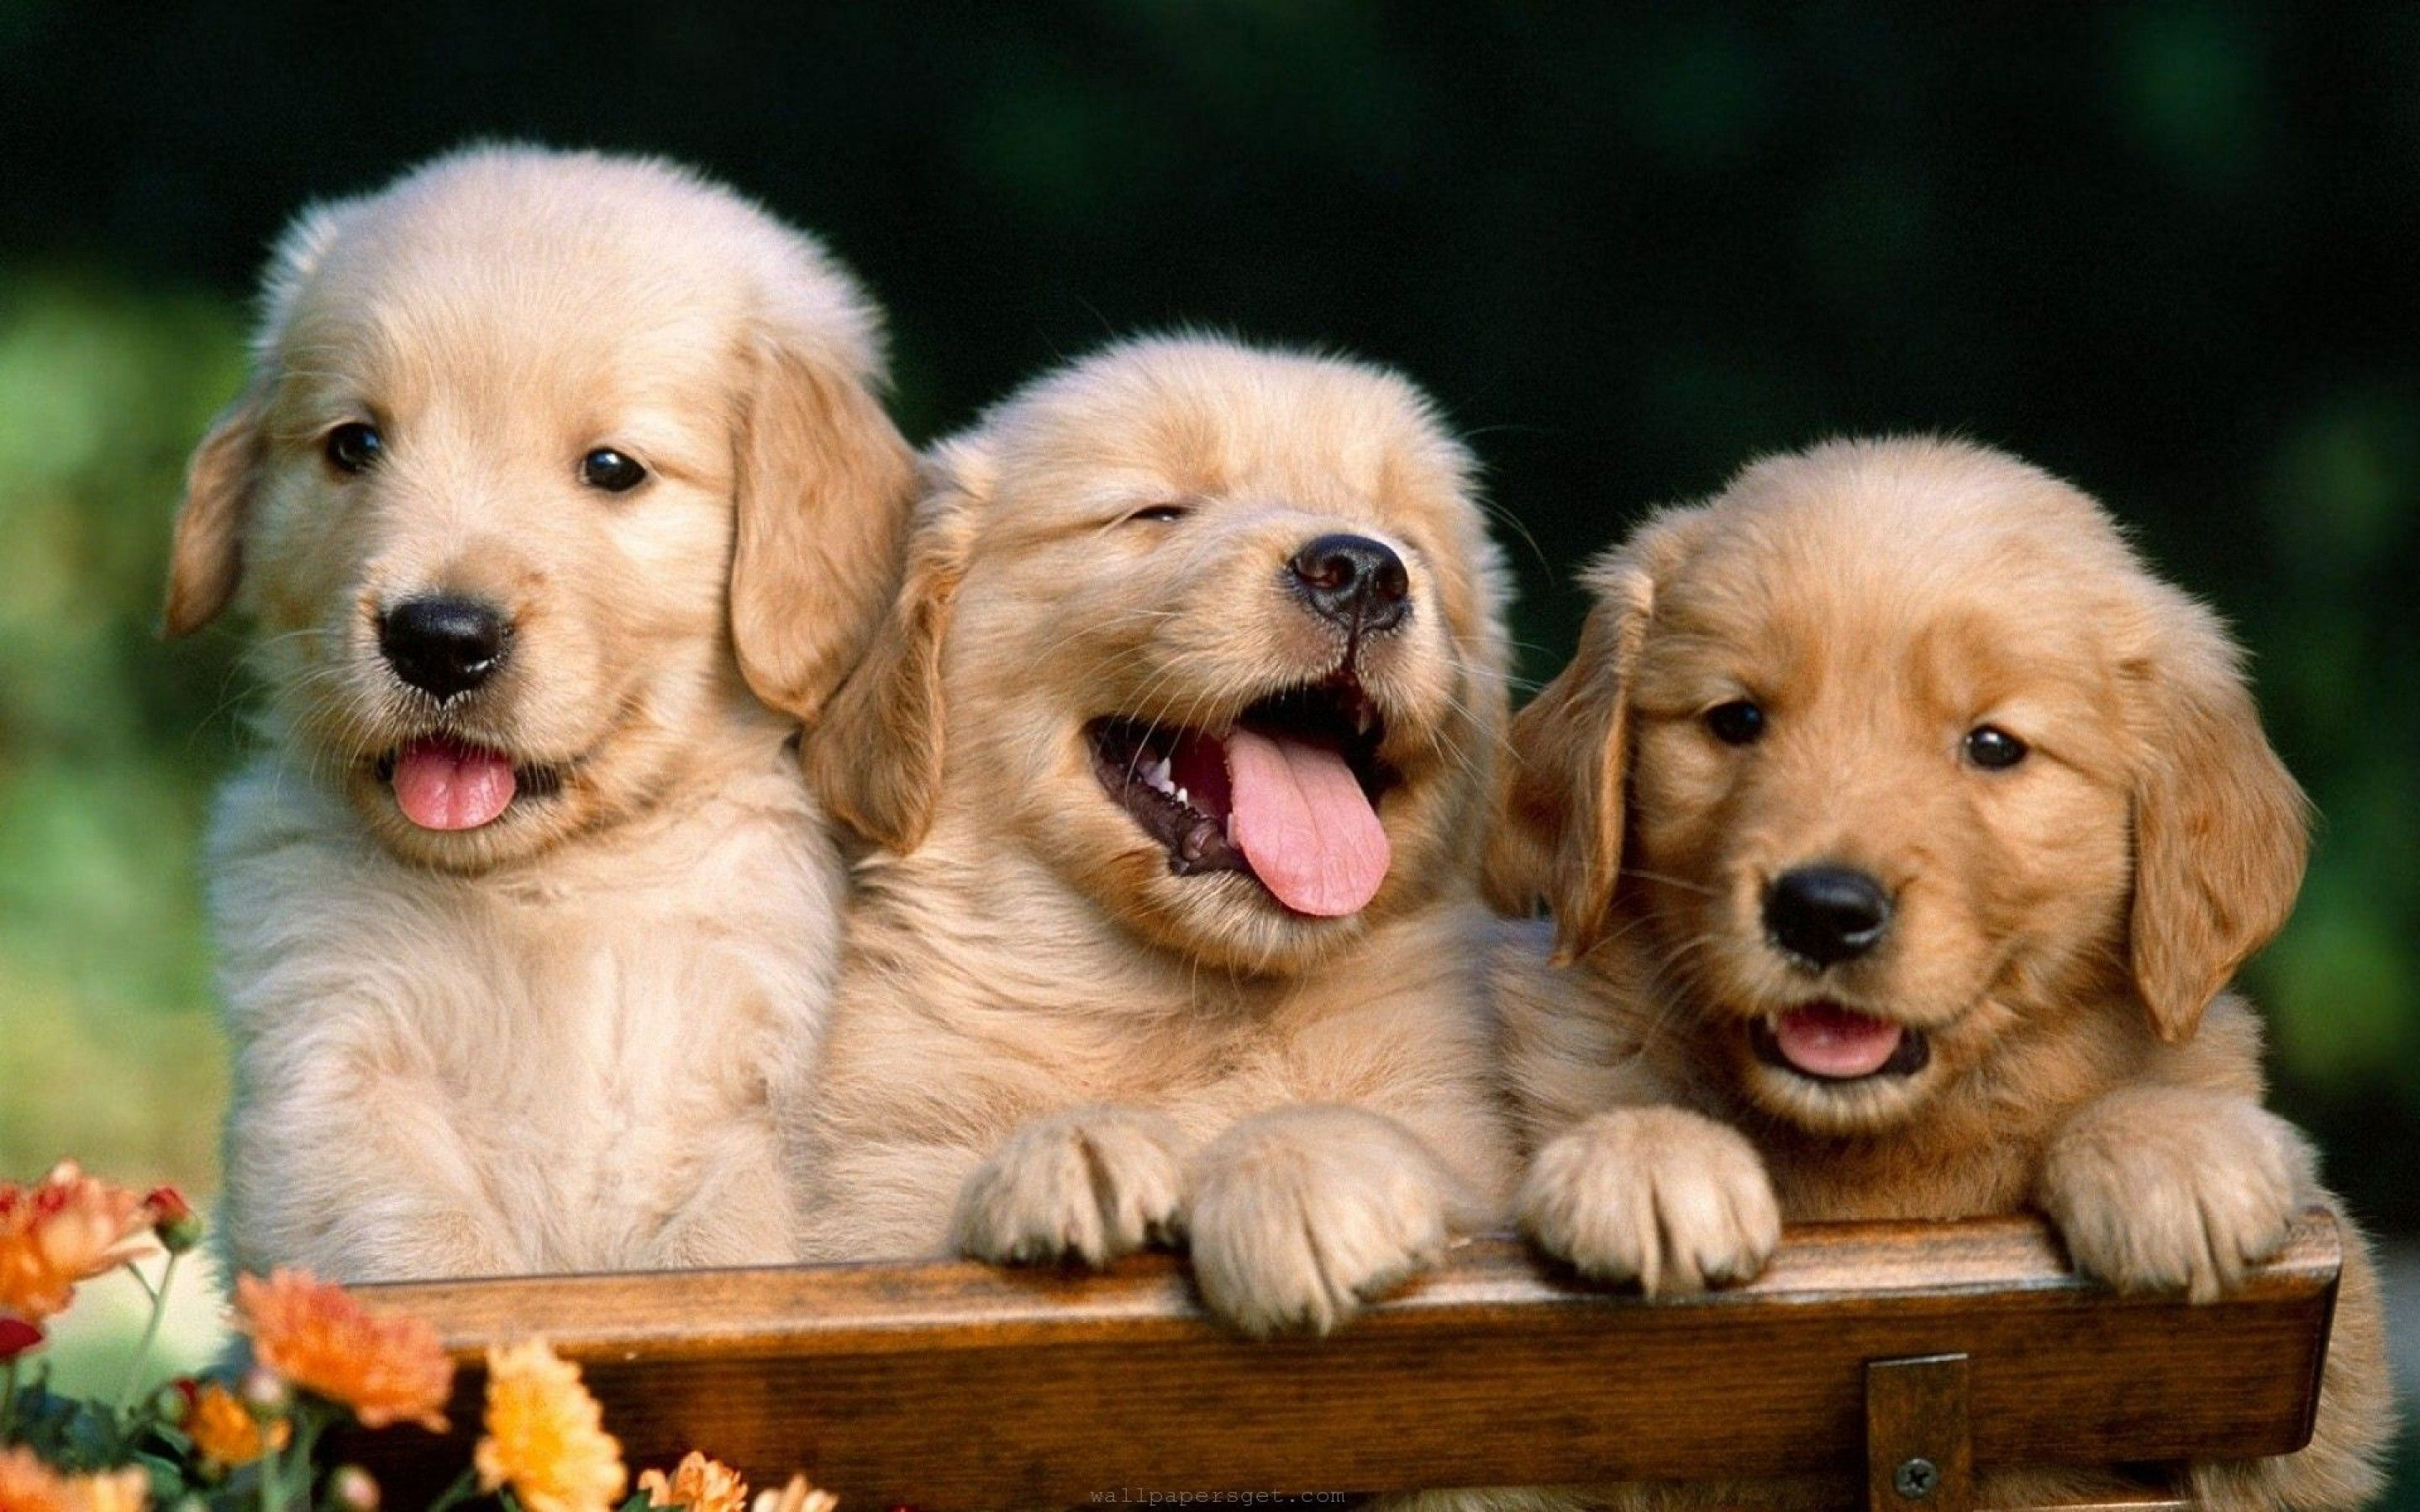 cute dog wallpapers download cute dog wallpapers for windows